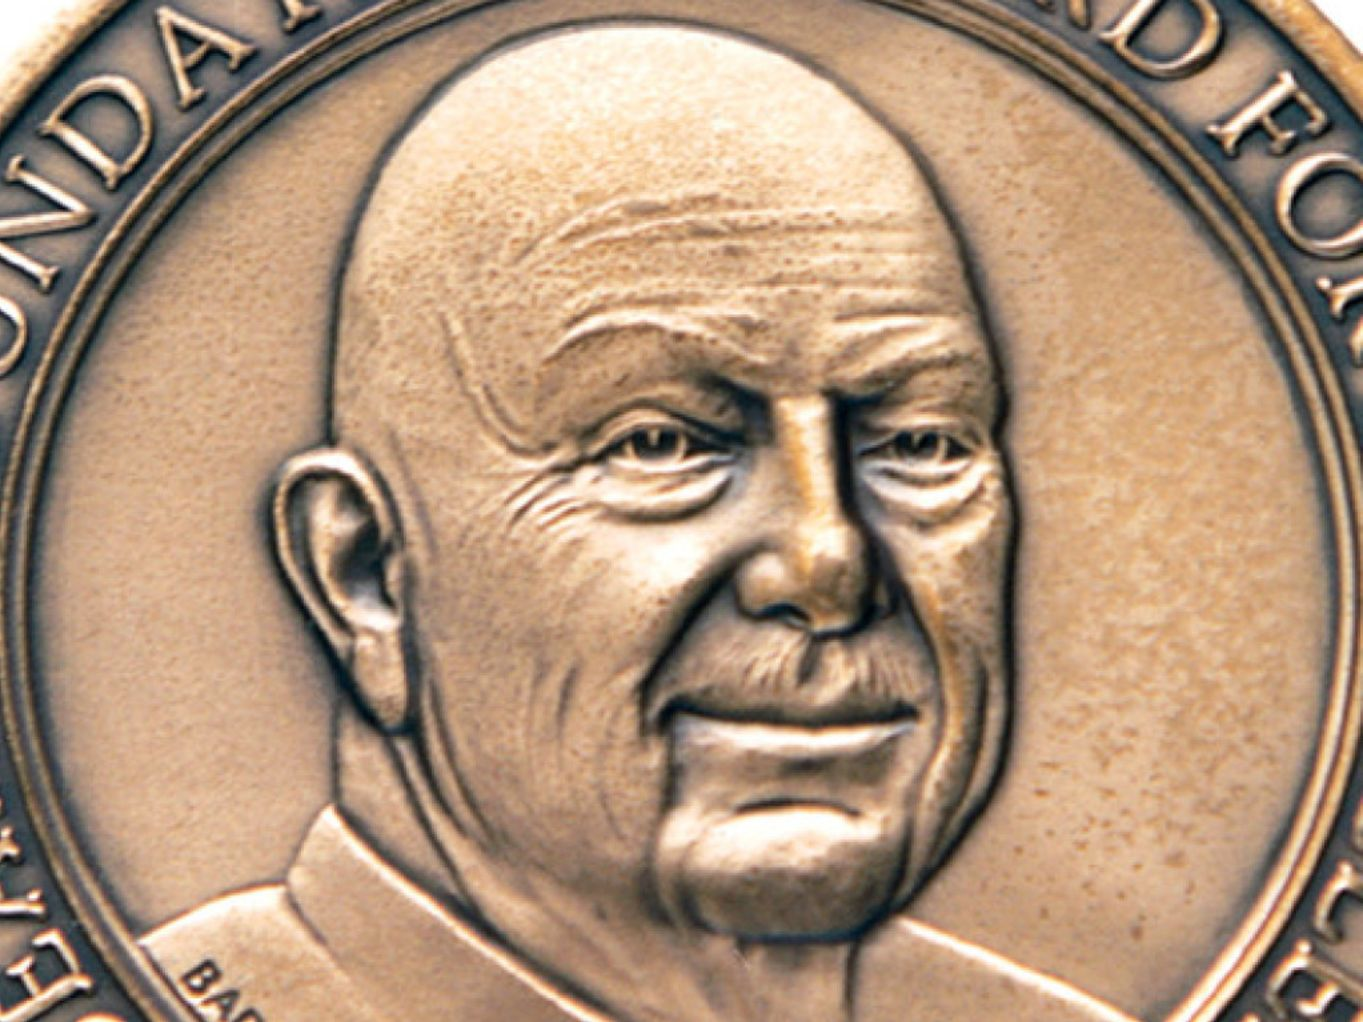 O james beard awards 2013 facebook isv2vf